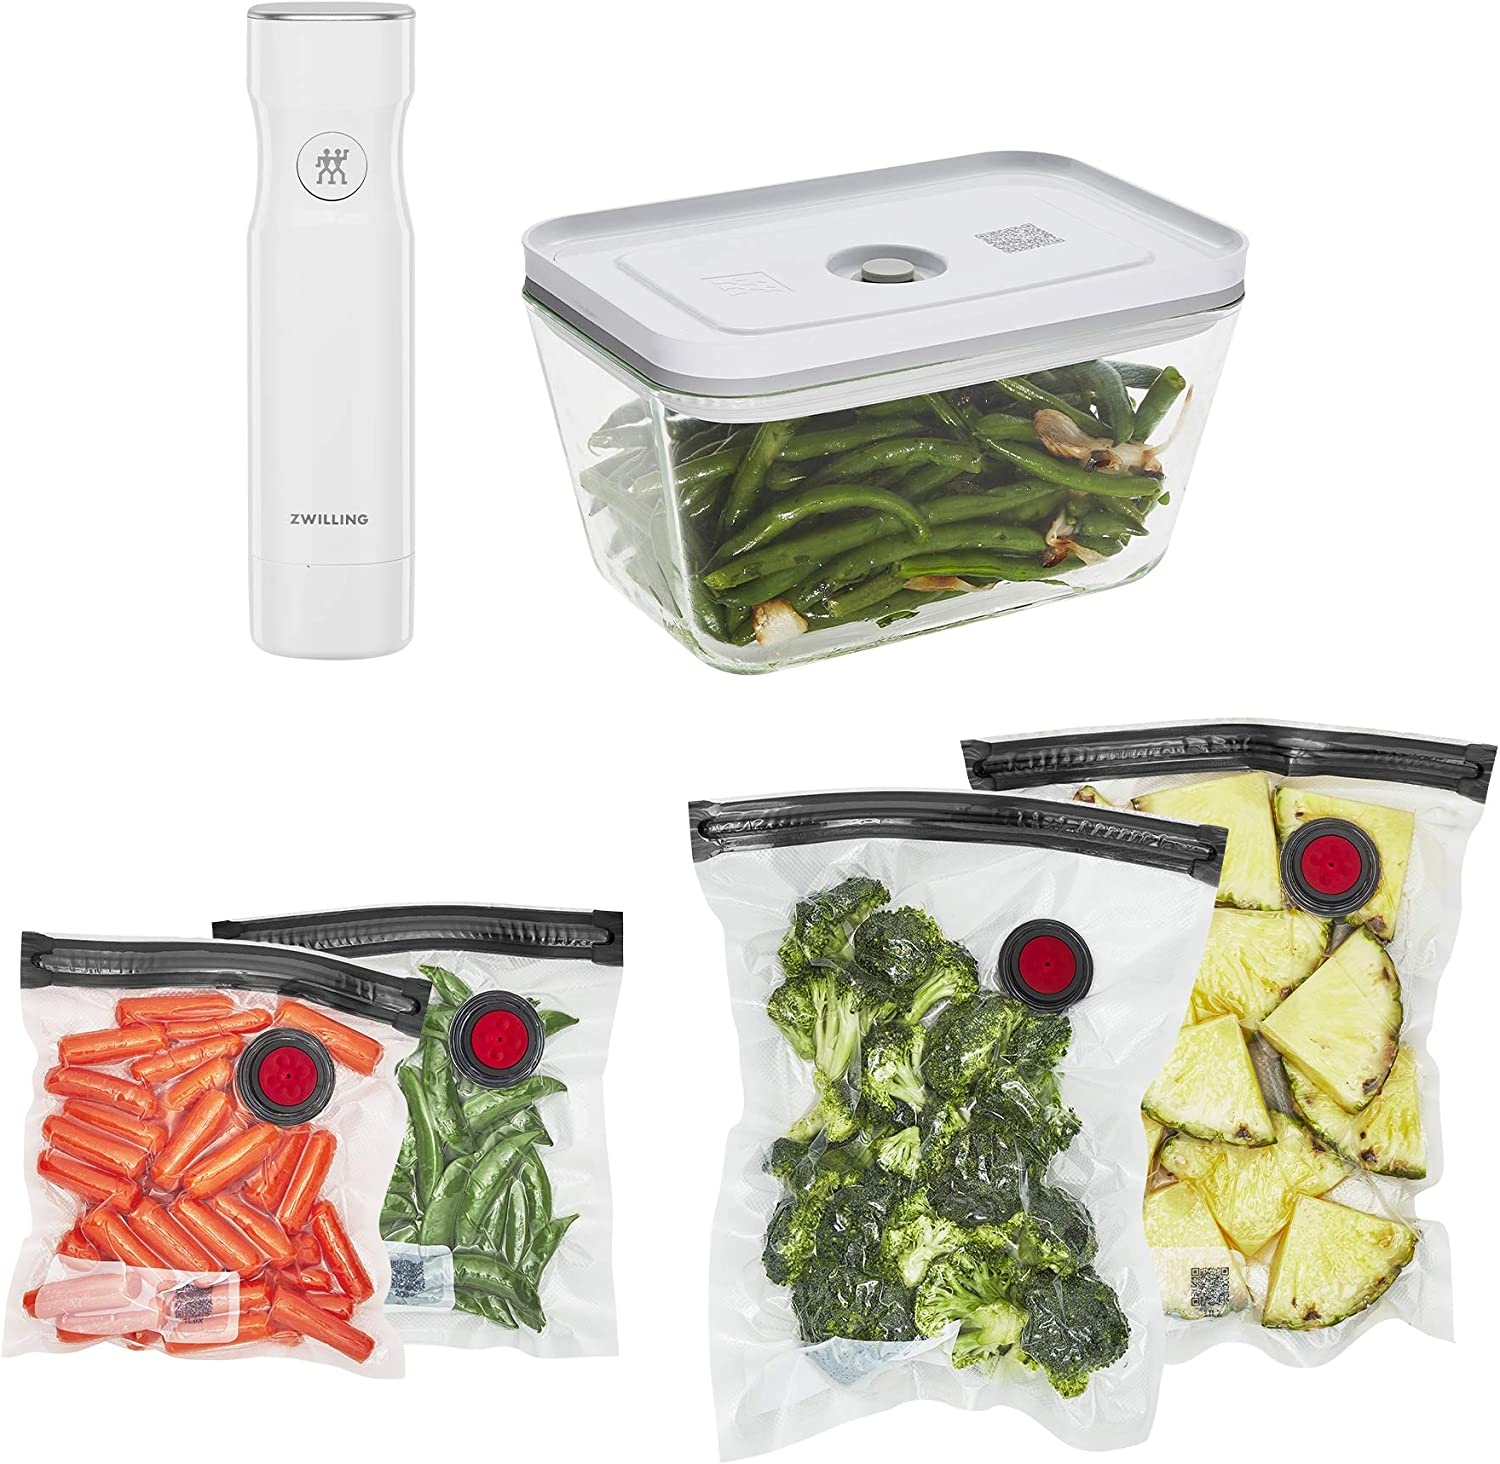 ZWILLING Fresh & Save Vacuum Sealer Machine Starter Set, Food Saver, Glass 6 piece BPA Free, Meal Prep or Sous Vide